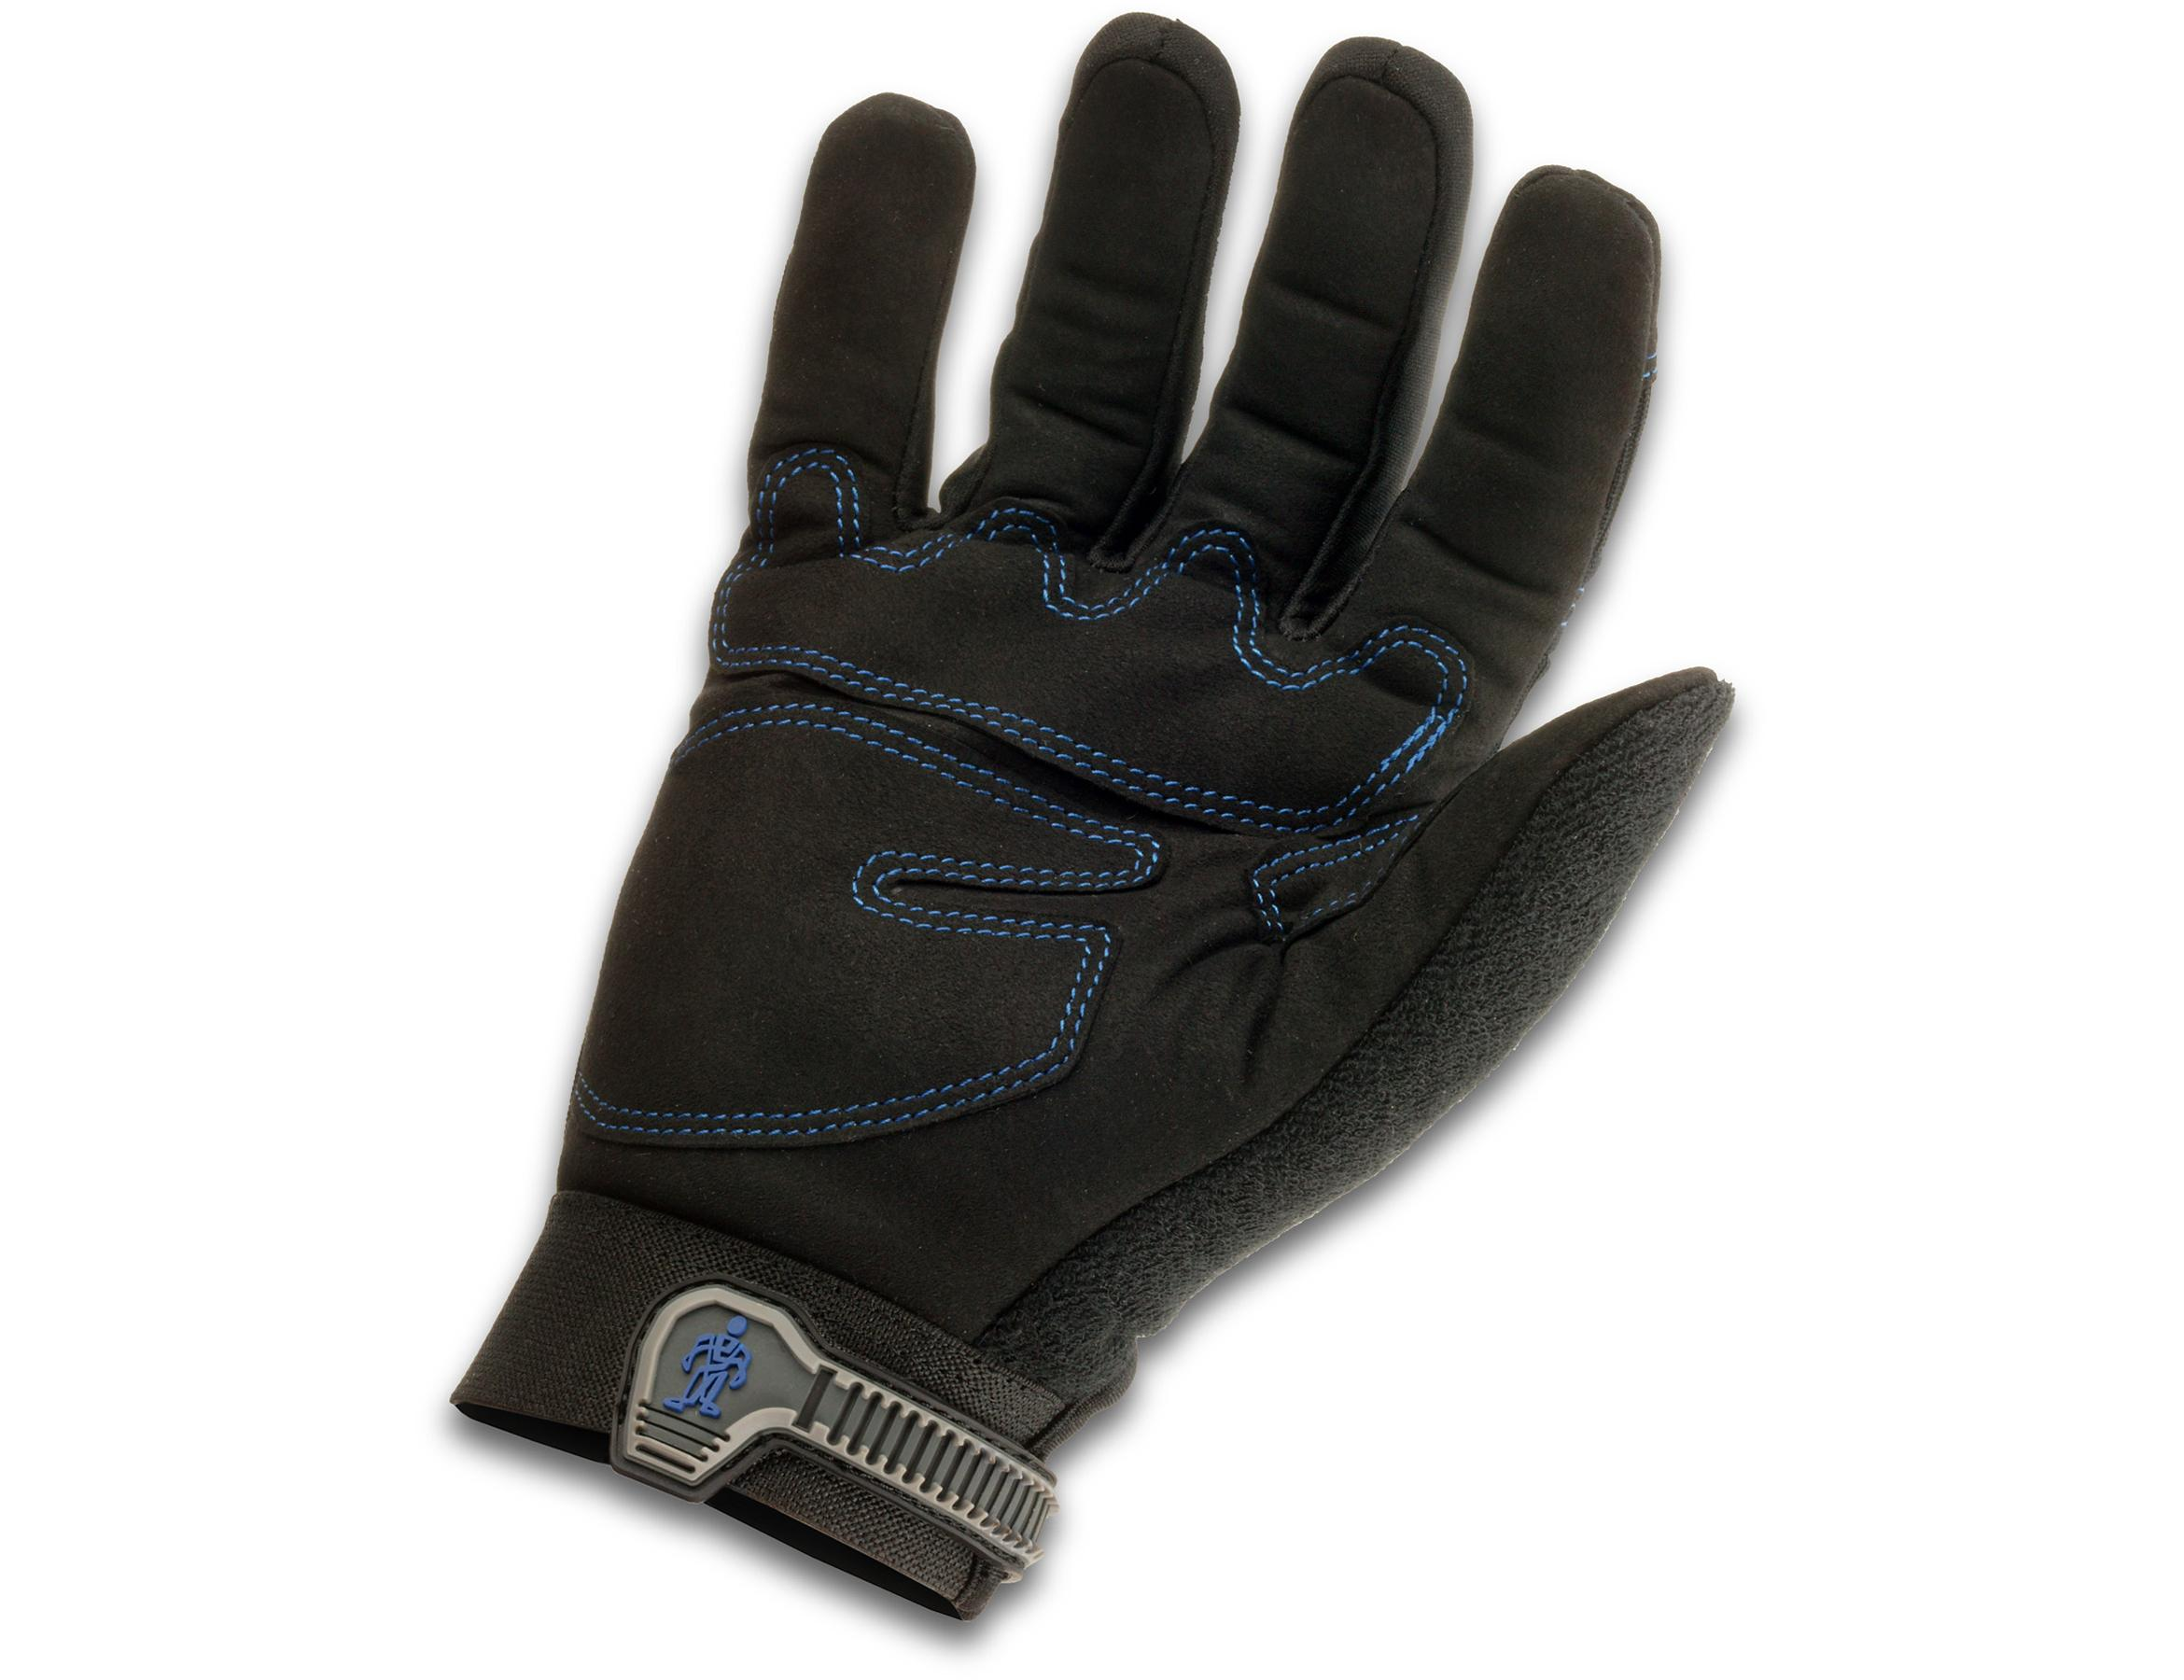 Insulated leather work gloves amazon - From The Manufacturer